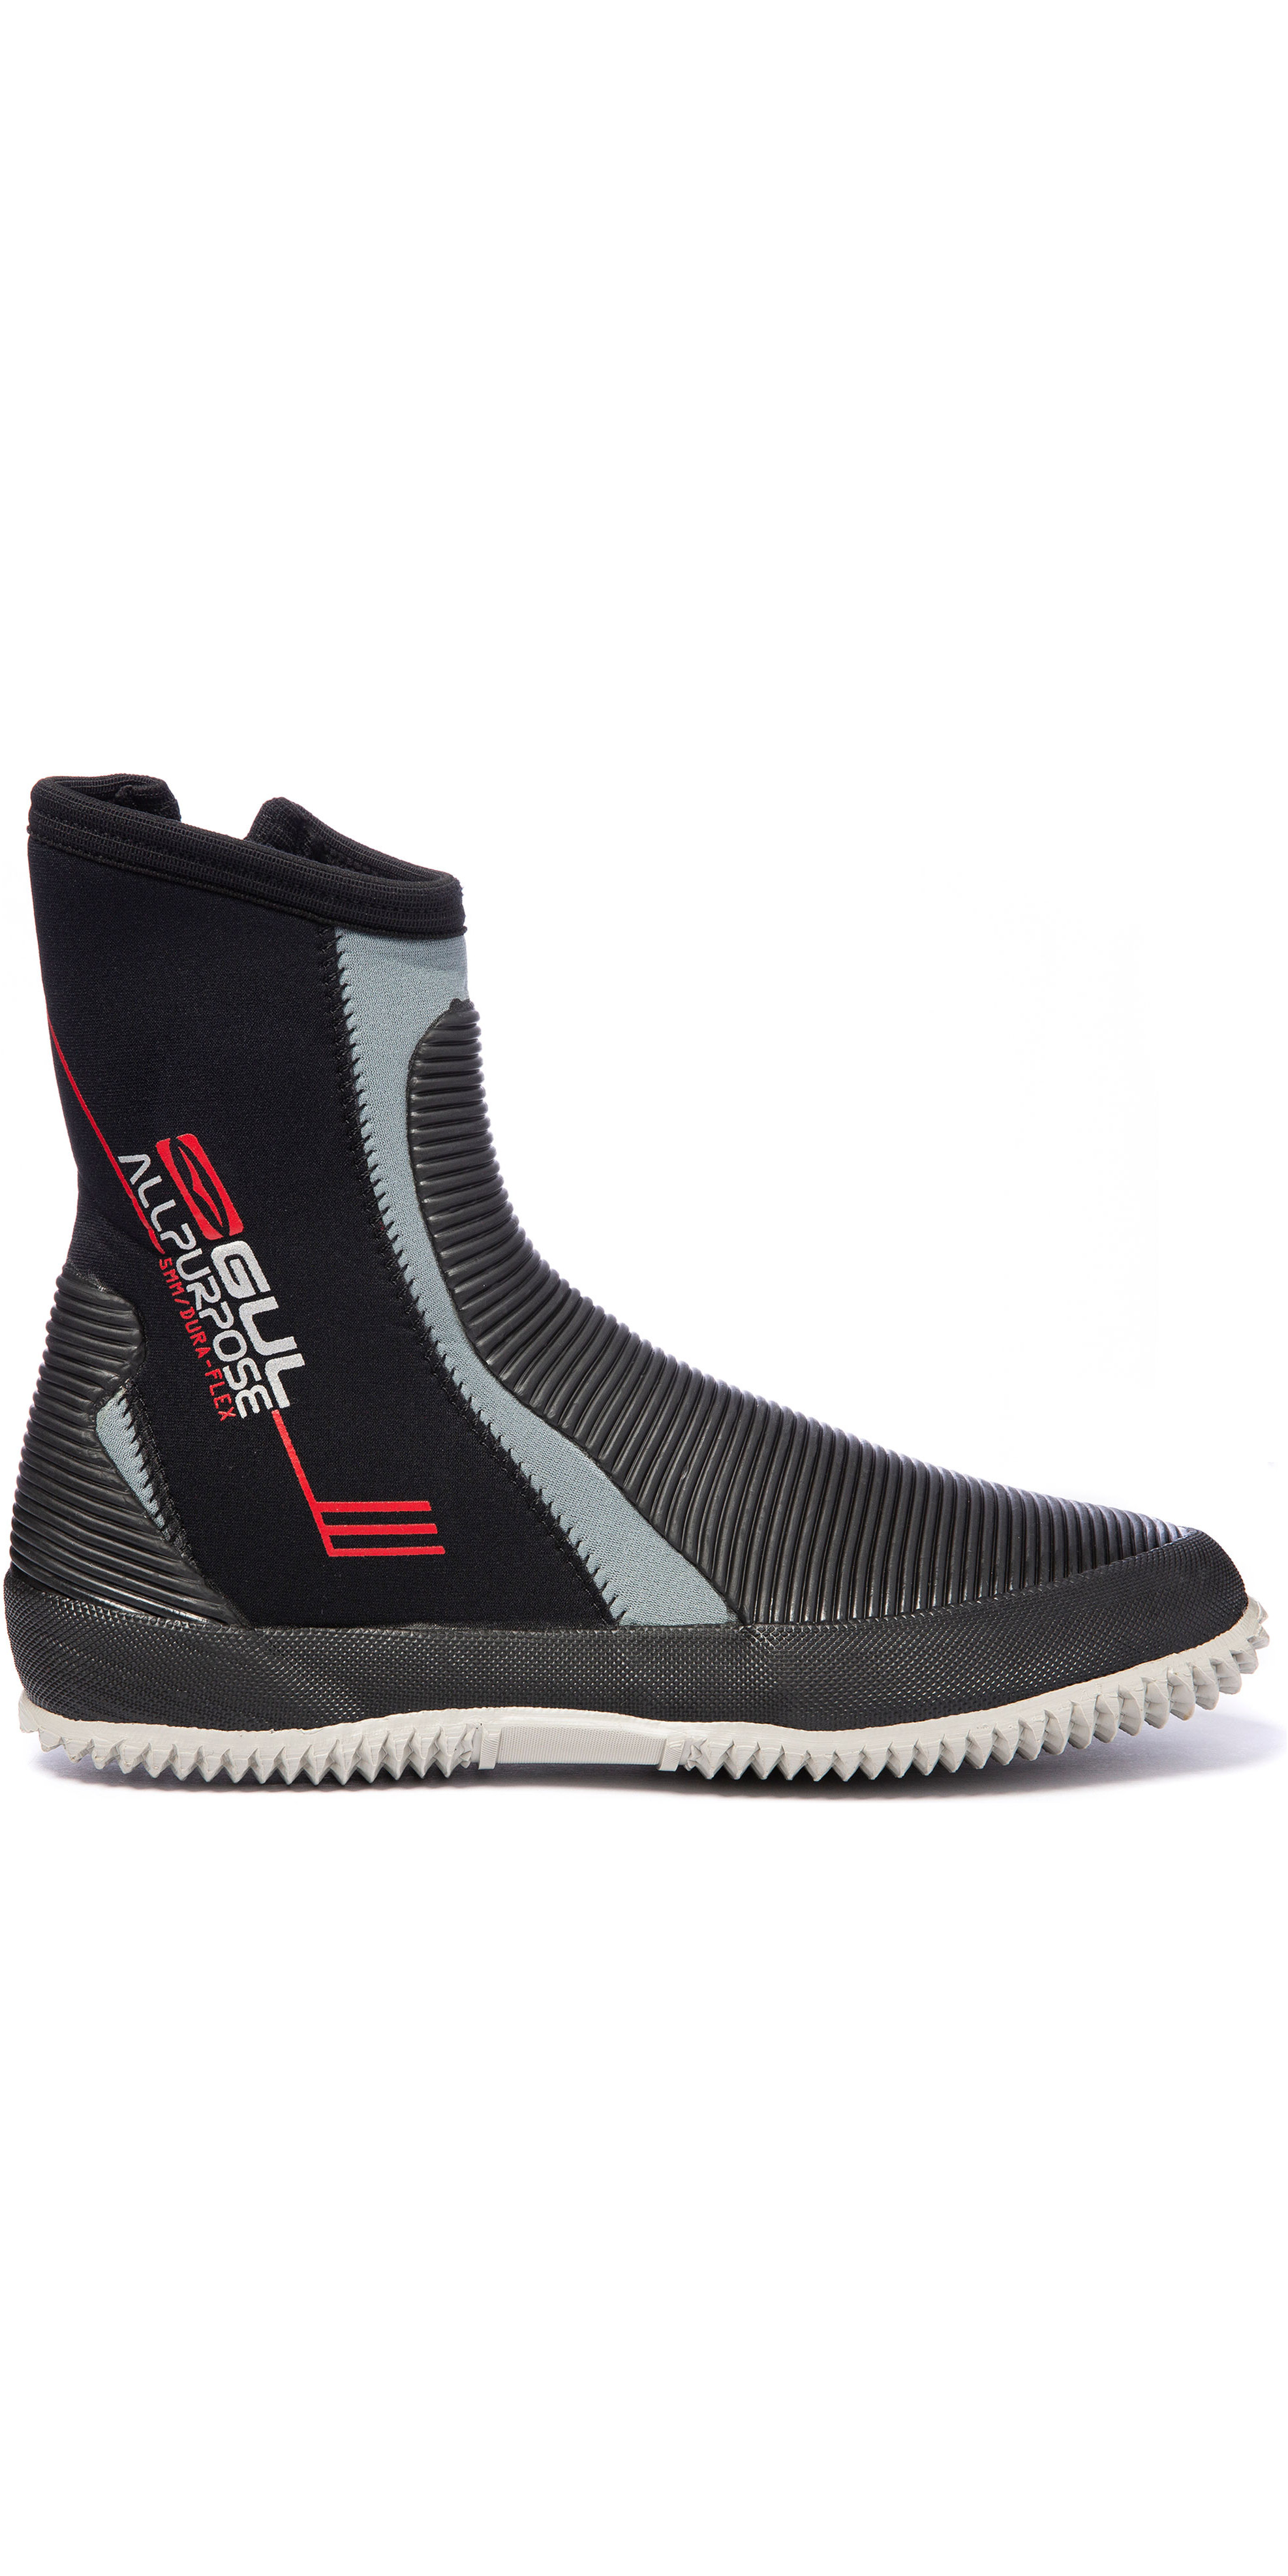 2019 Gul All Purpose 5mm Neoprene Zipped Boots BO1276 - Black / Grey